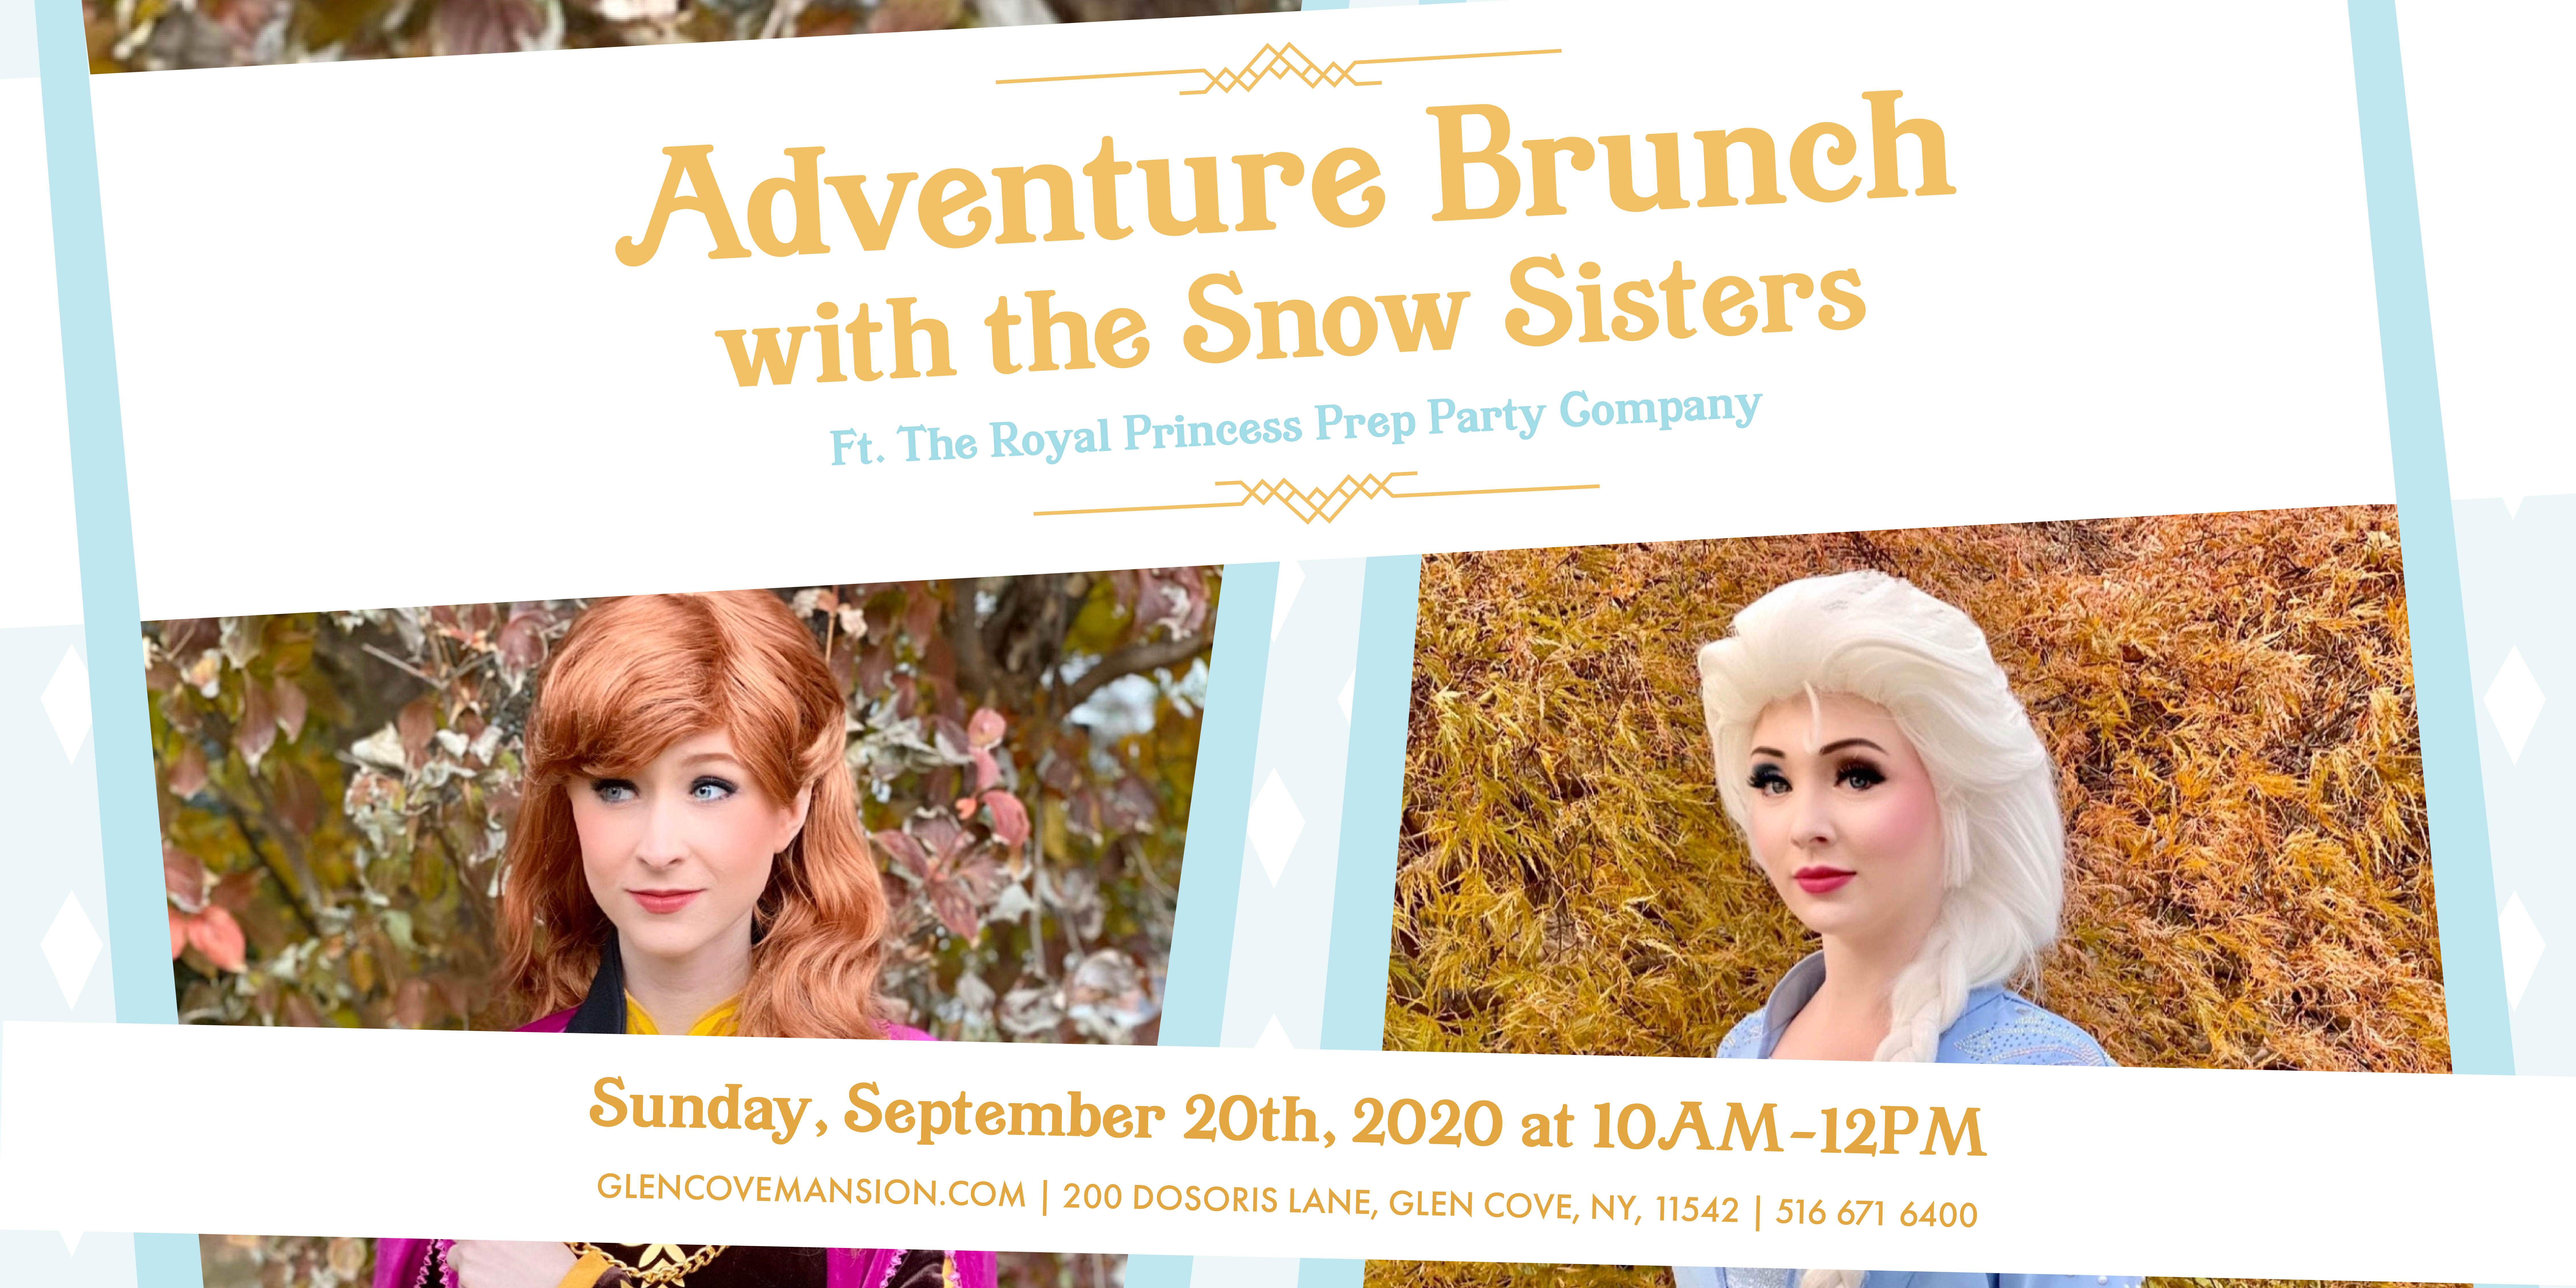 Adventure Brunch with Snow Sisters